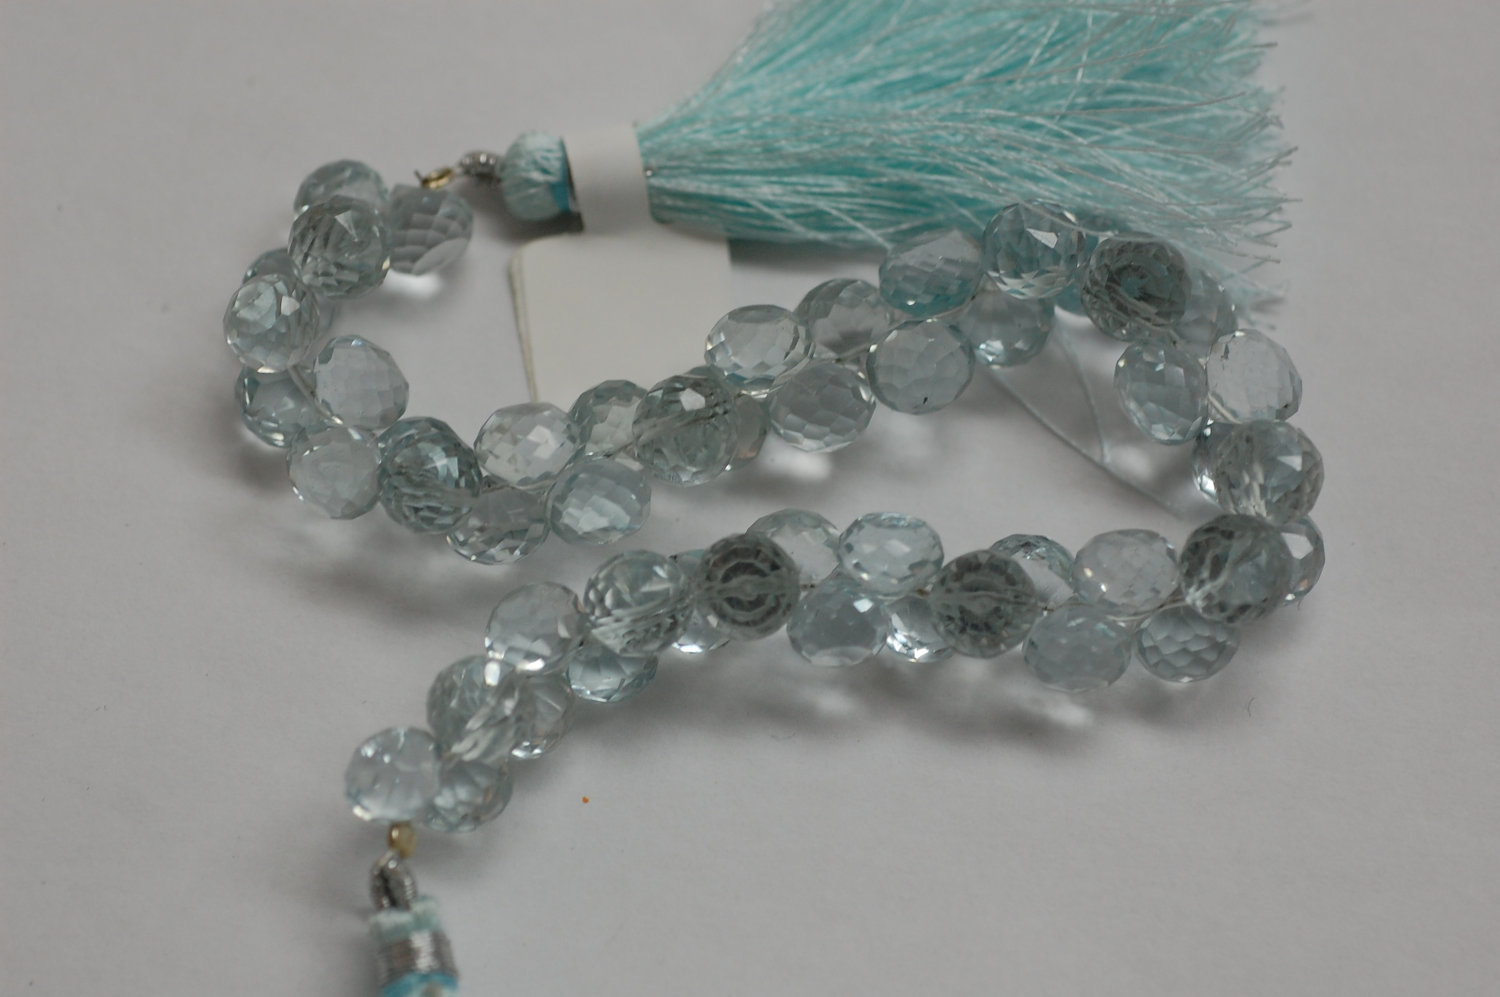 Aquamarine Hydro Quartz Onions Faceted